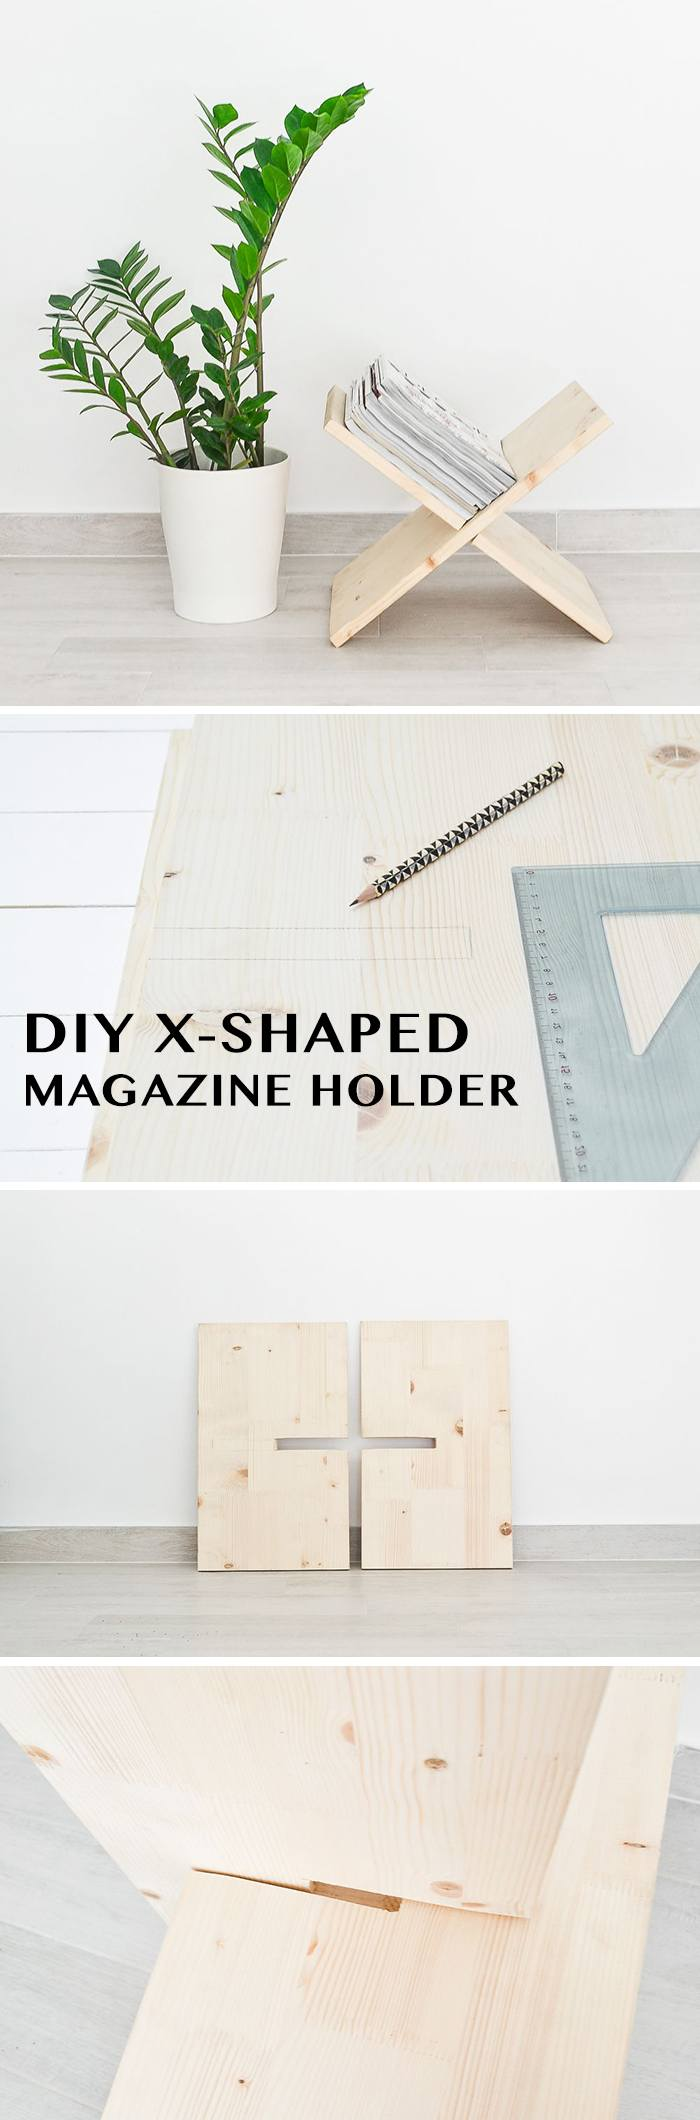 DIY X Shaped Magazine Holder